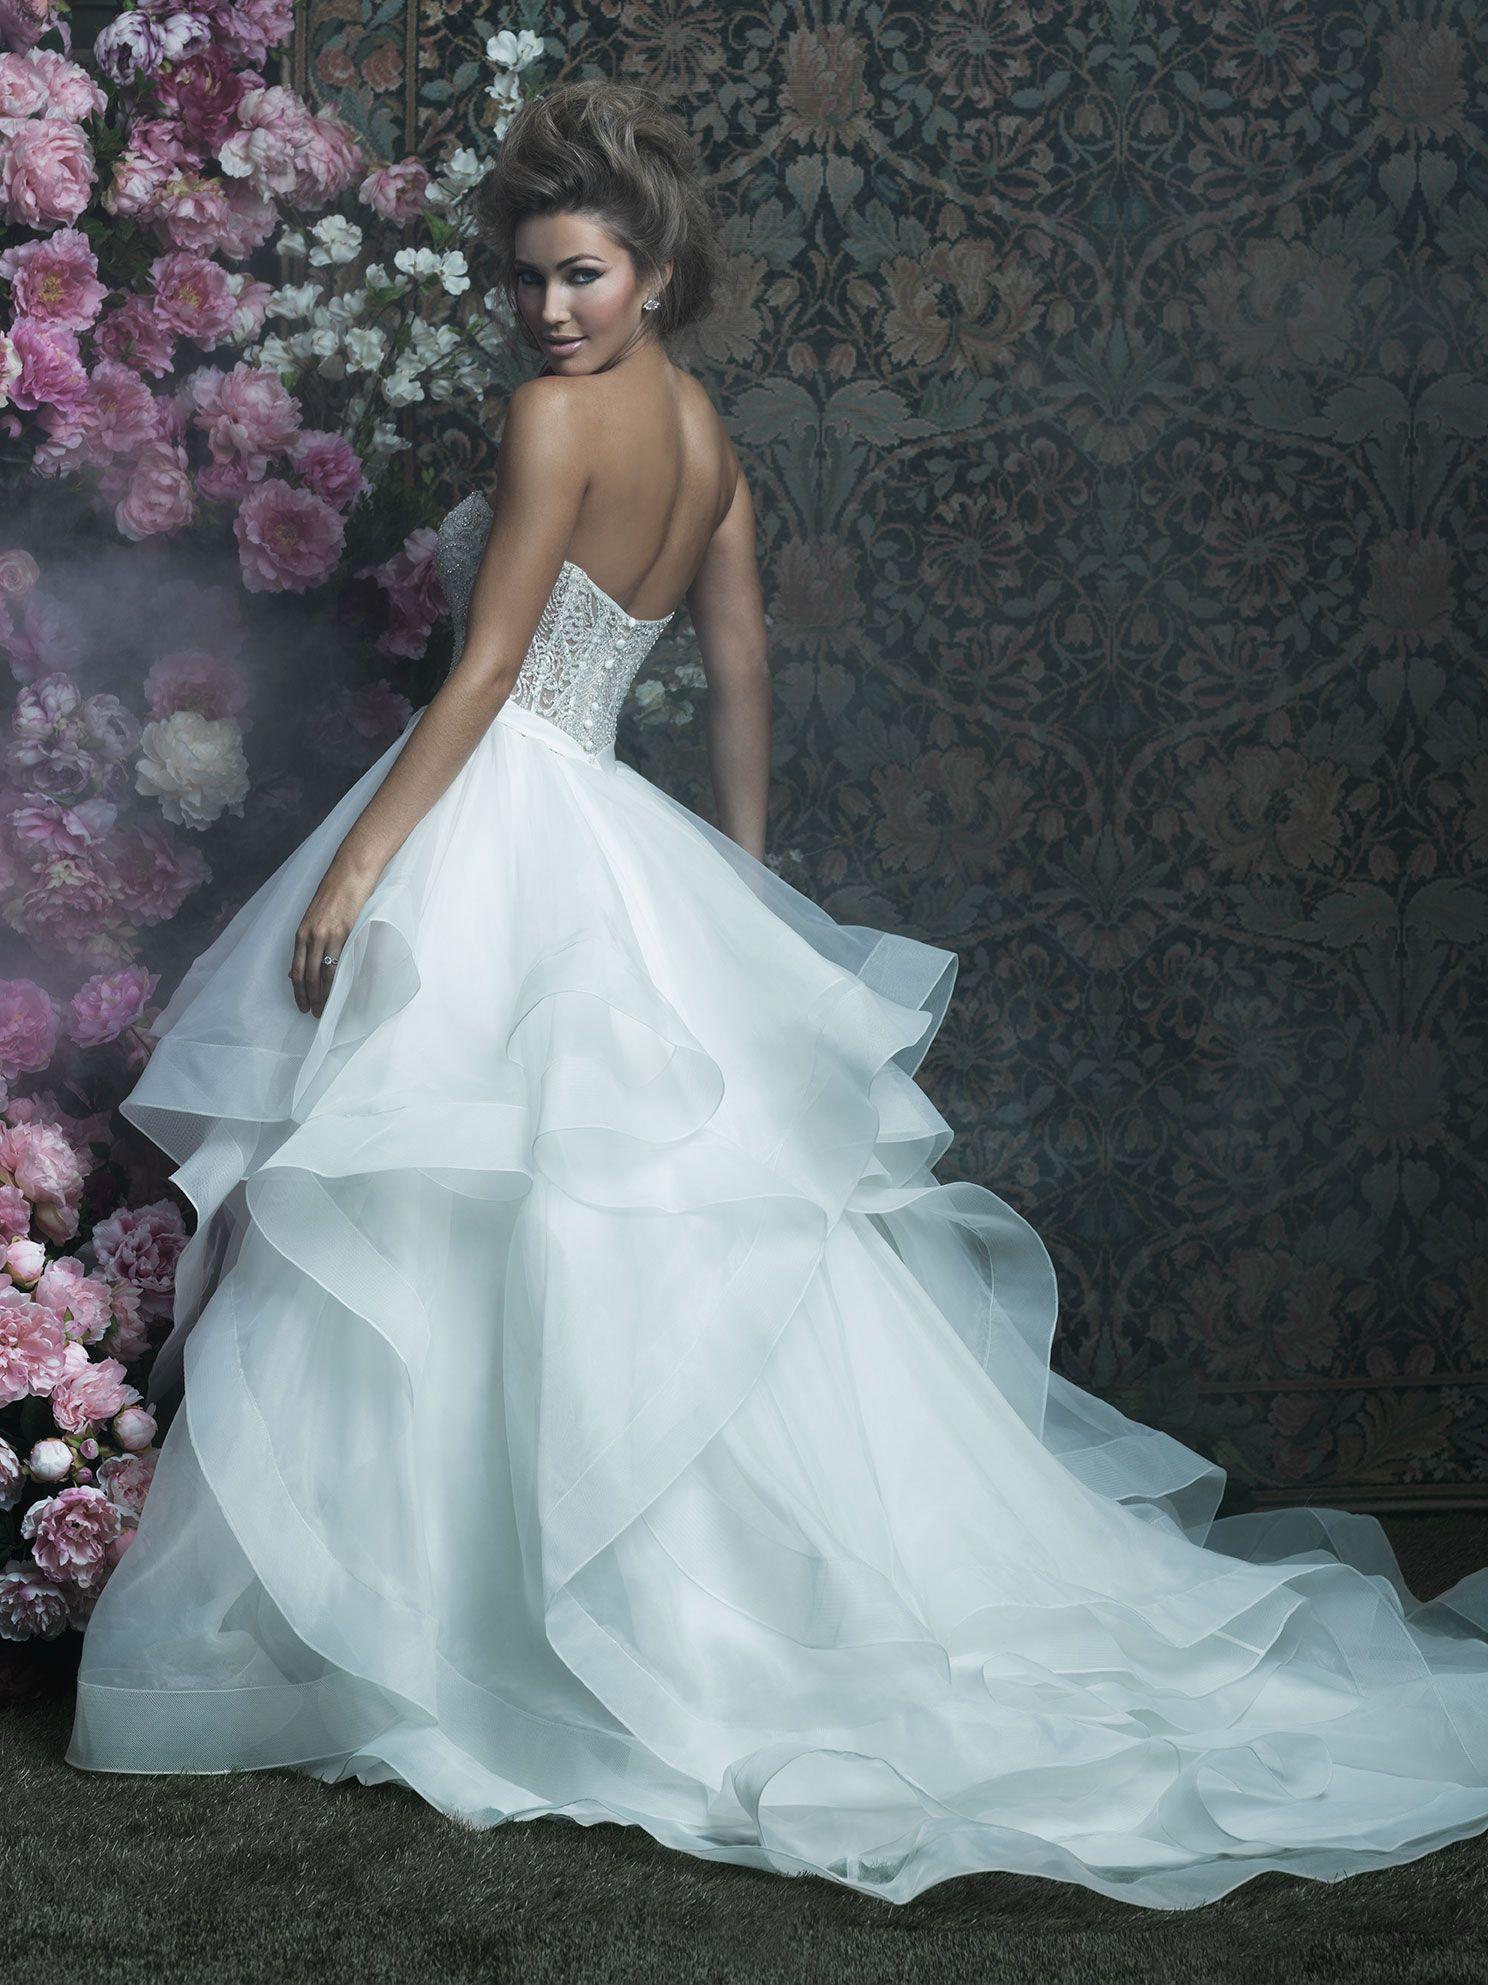 Stunning Wedding Dresses Tampa Images - Wedding Ideas - memiocall.com